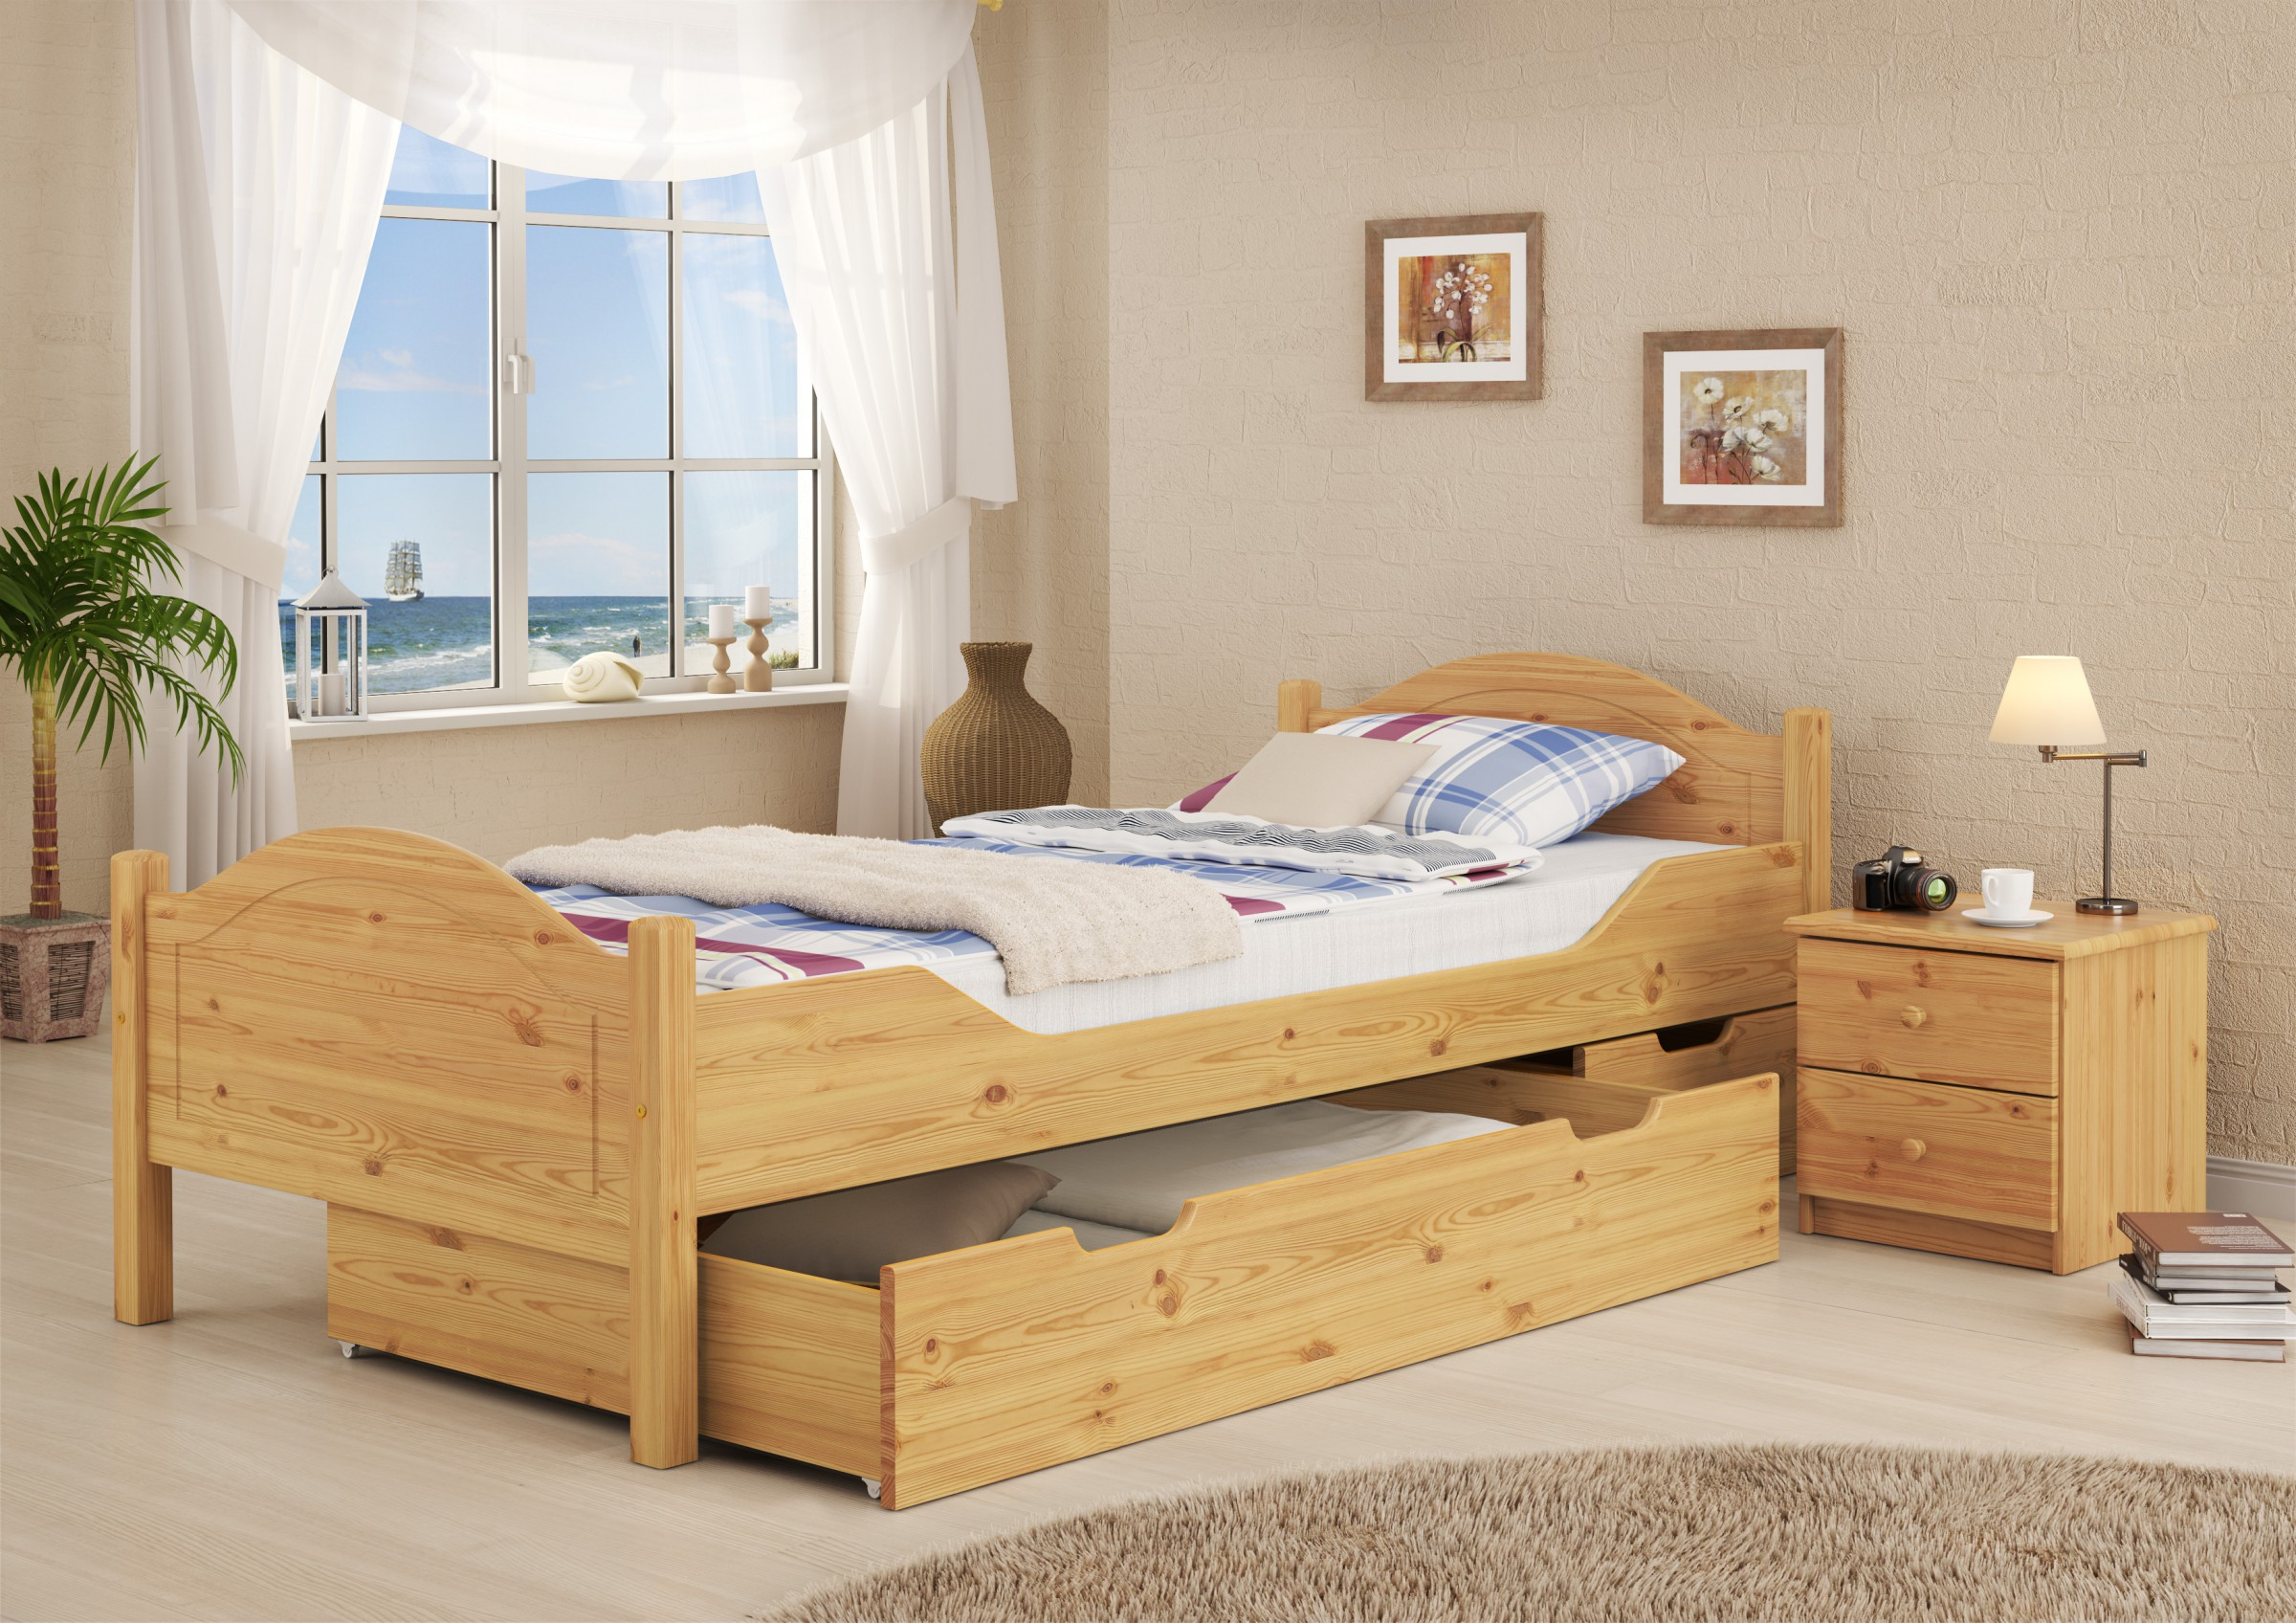 bett einzelbett jugendbett kiefer massiv 90x200 cm mit lattenrollrost ebay. Black Bedroom Furniture Sets. Home Design Ideas